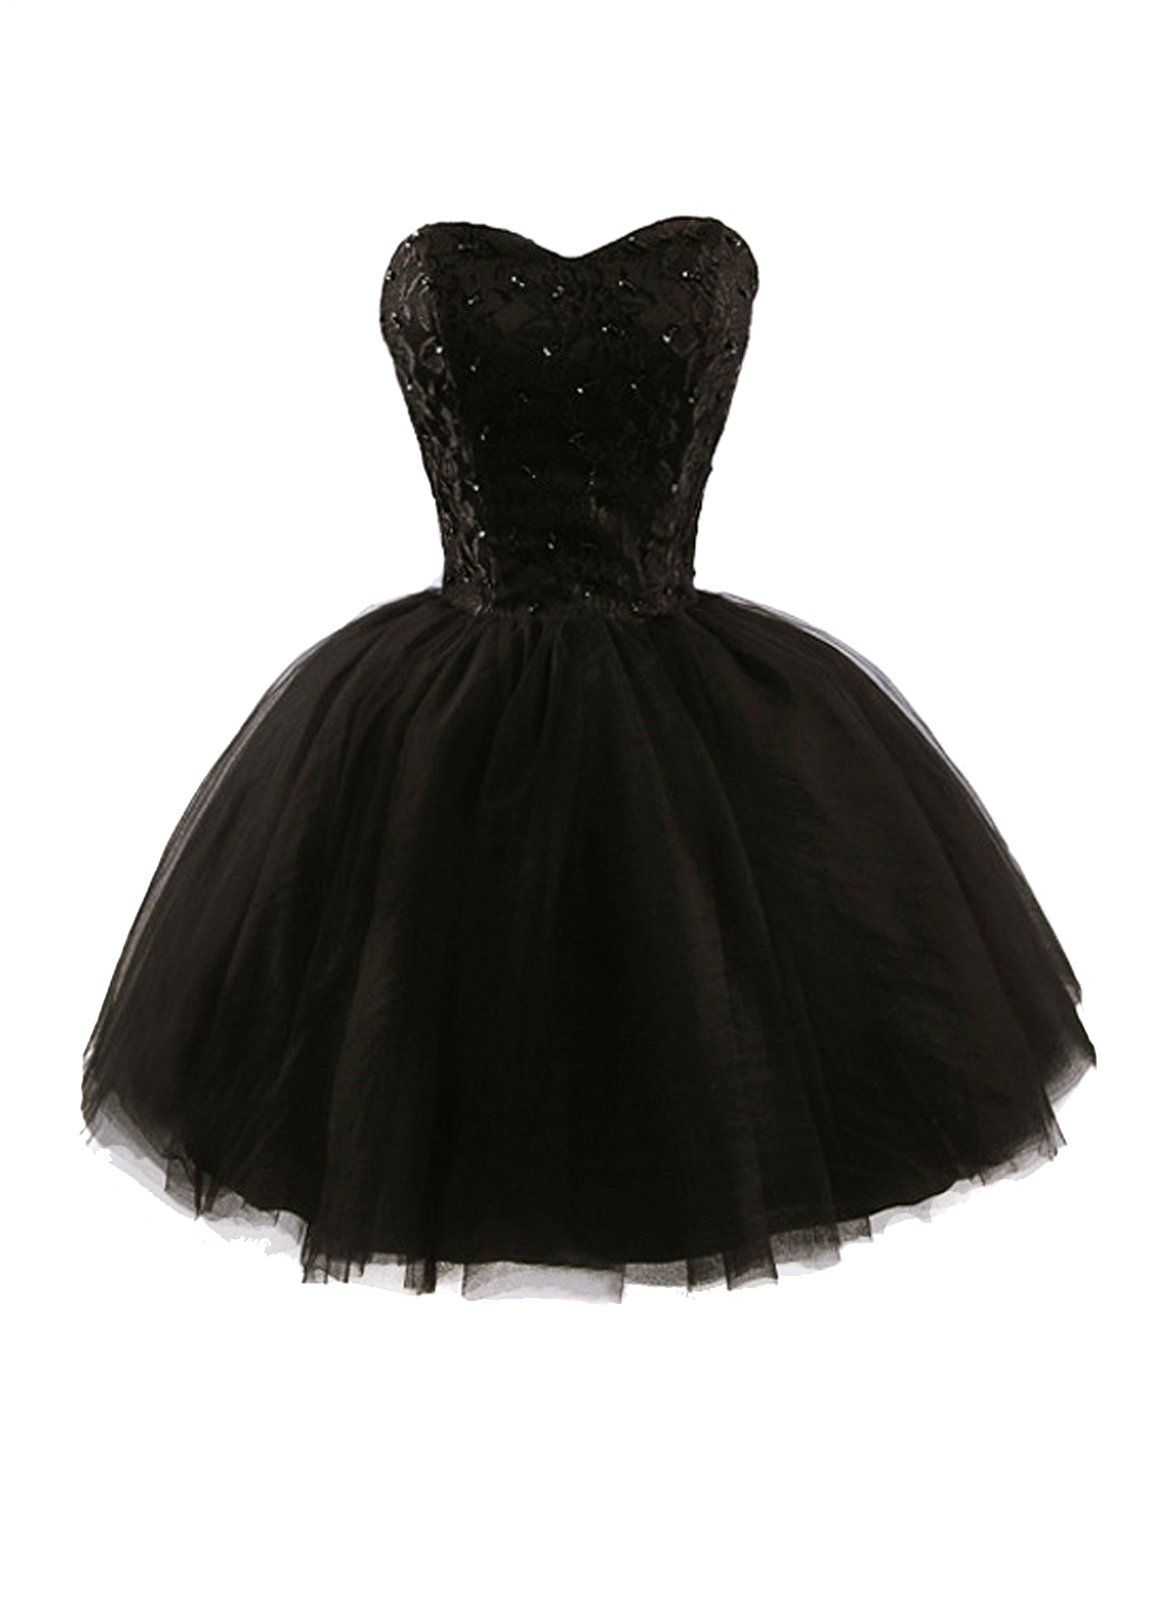 Aptro womenus sweetheart tulle short homecoming party dresses at